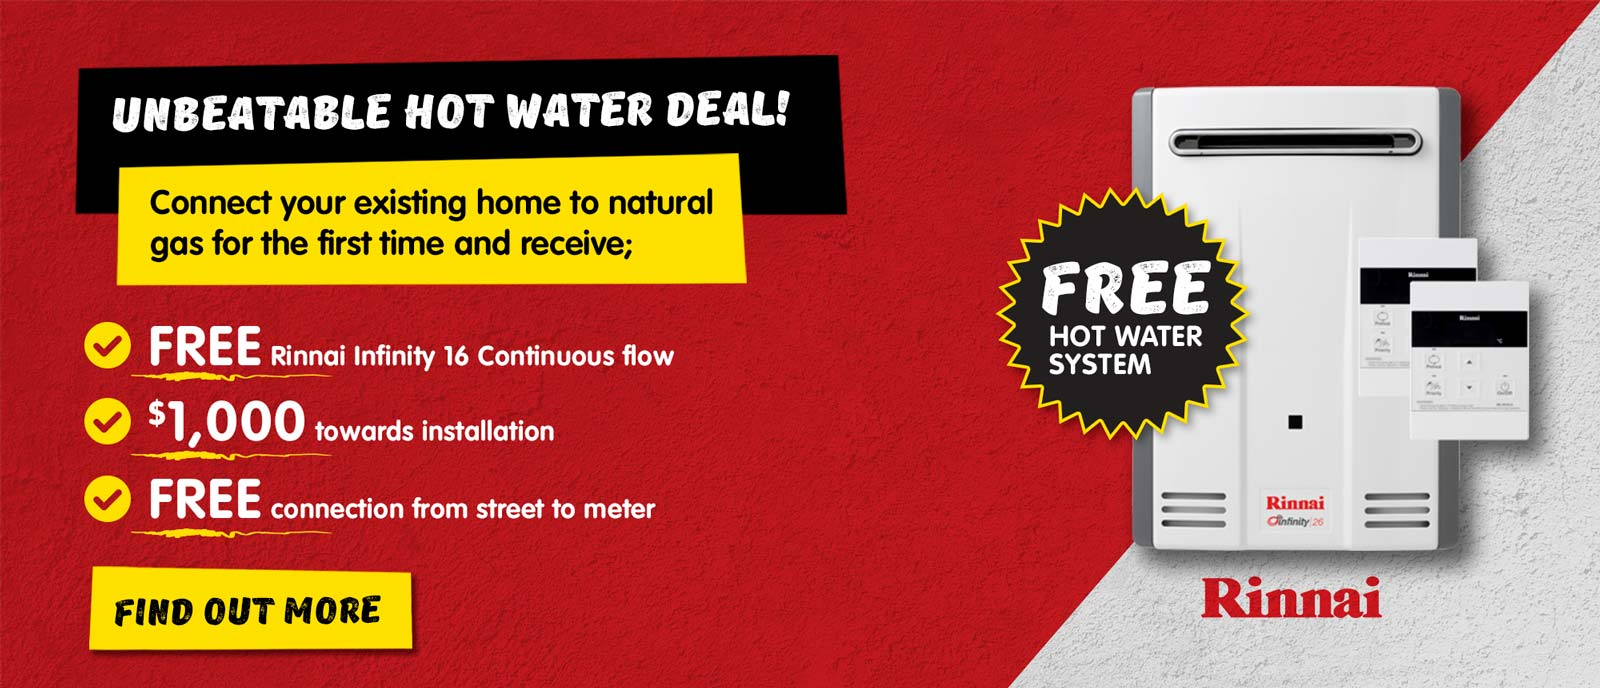 Rinnai Infinity 16 Continuous Flow Gas Hot Water Offer